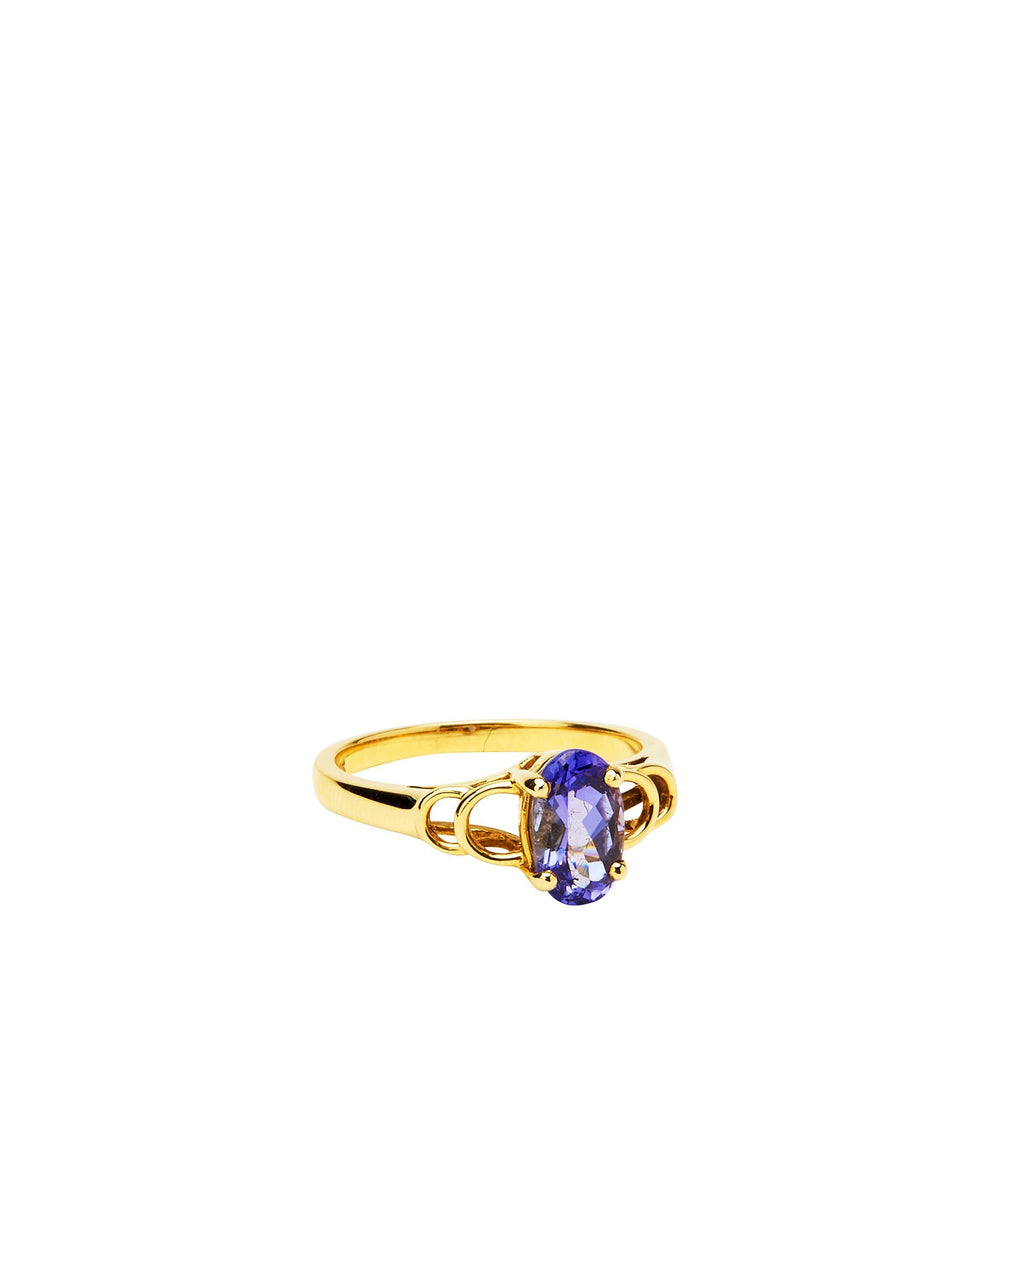 Tanzanite on 14k Yellow Gold